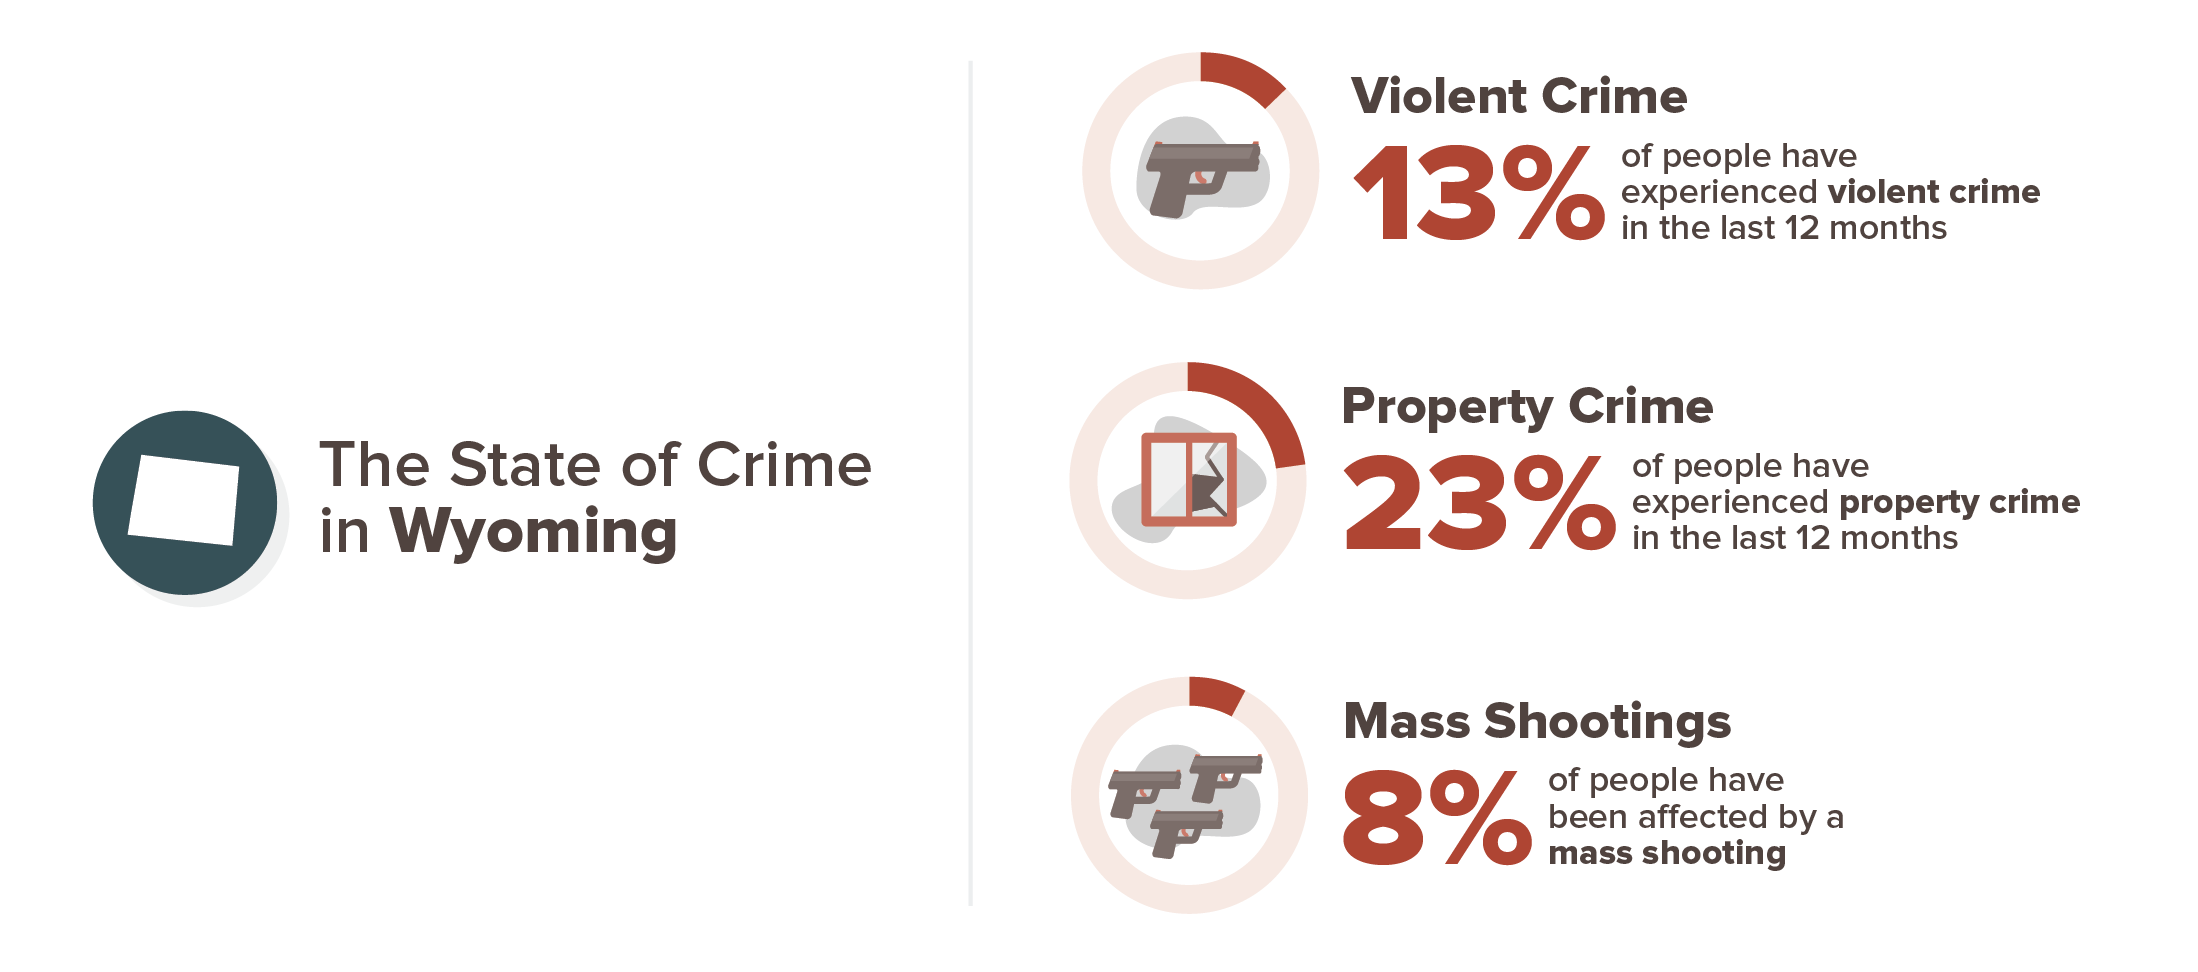 Wyoming crime experience infographic